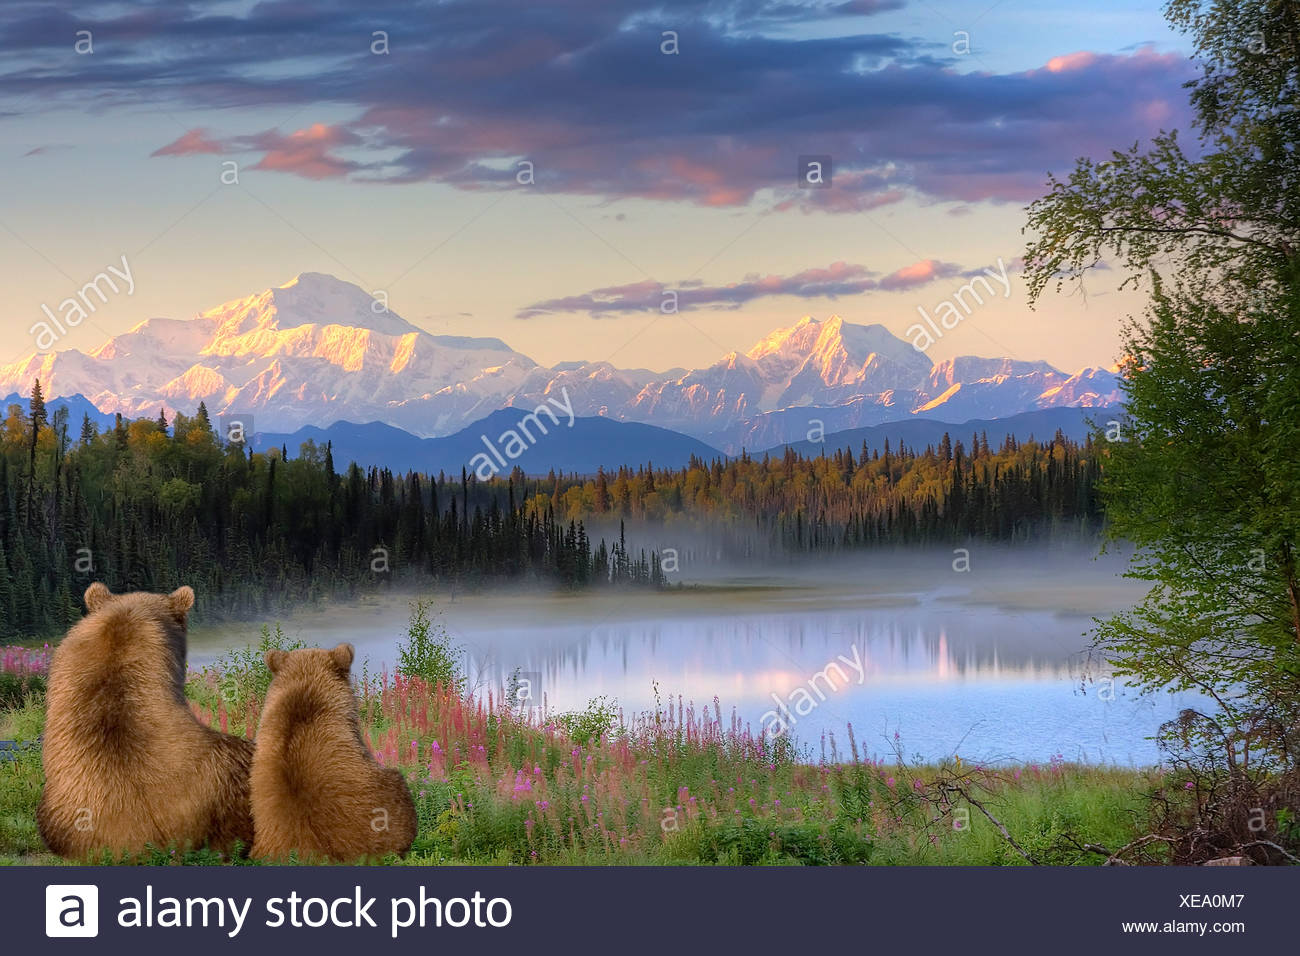 Sow and Cub brown bears looking across small lake and viewing Mt. McKinley at sunrise, SouthCentral Alaska, Autumn, COMPOSITE - Stock Image